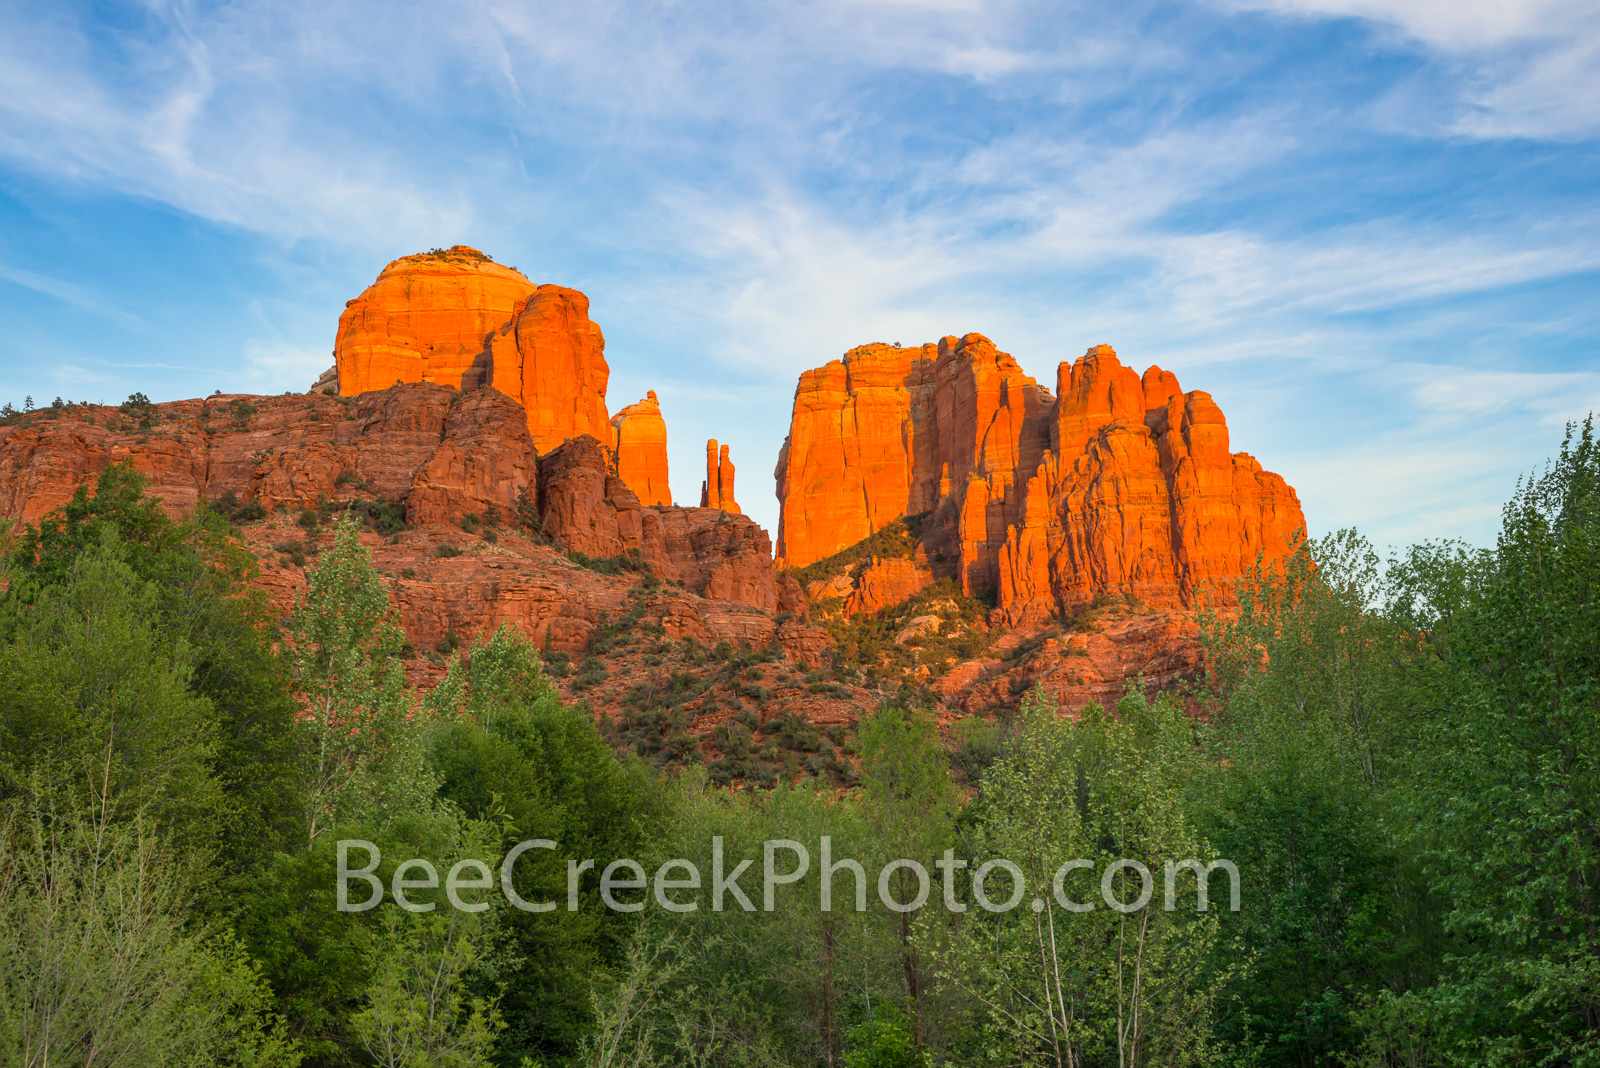 Glow at Cathedral Rock  - The red rocks of Sedona Arizona, are a beautiful site as the sunset was just beinging to set creating...